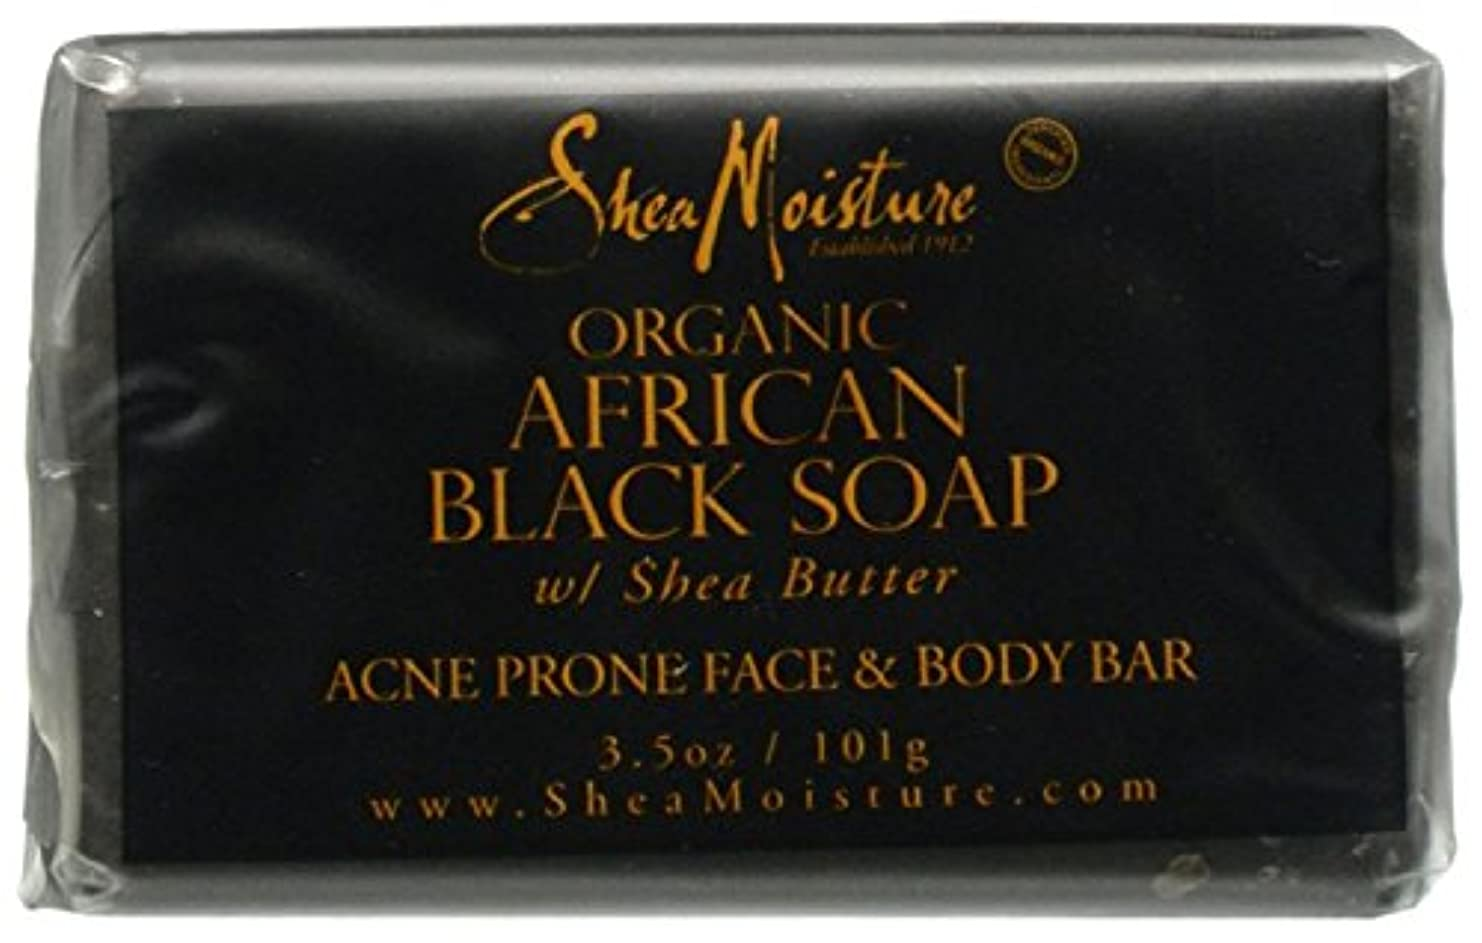 ヒップ湿ったセットするShea Moisture バーソープ (Organic African Black Soap Acne Prone Face & Body)